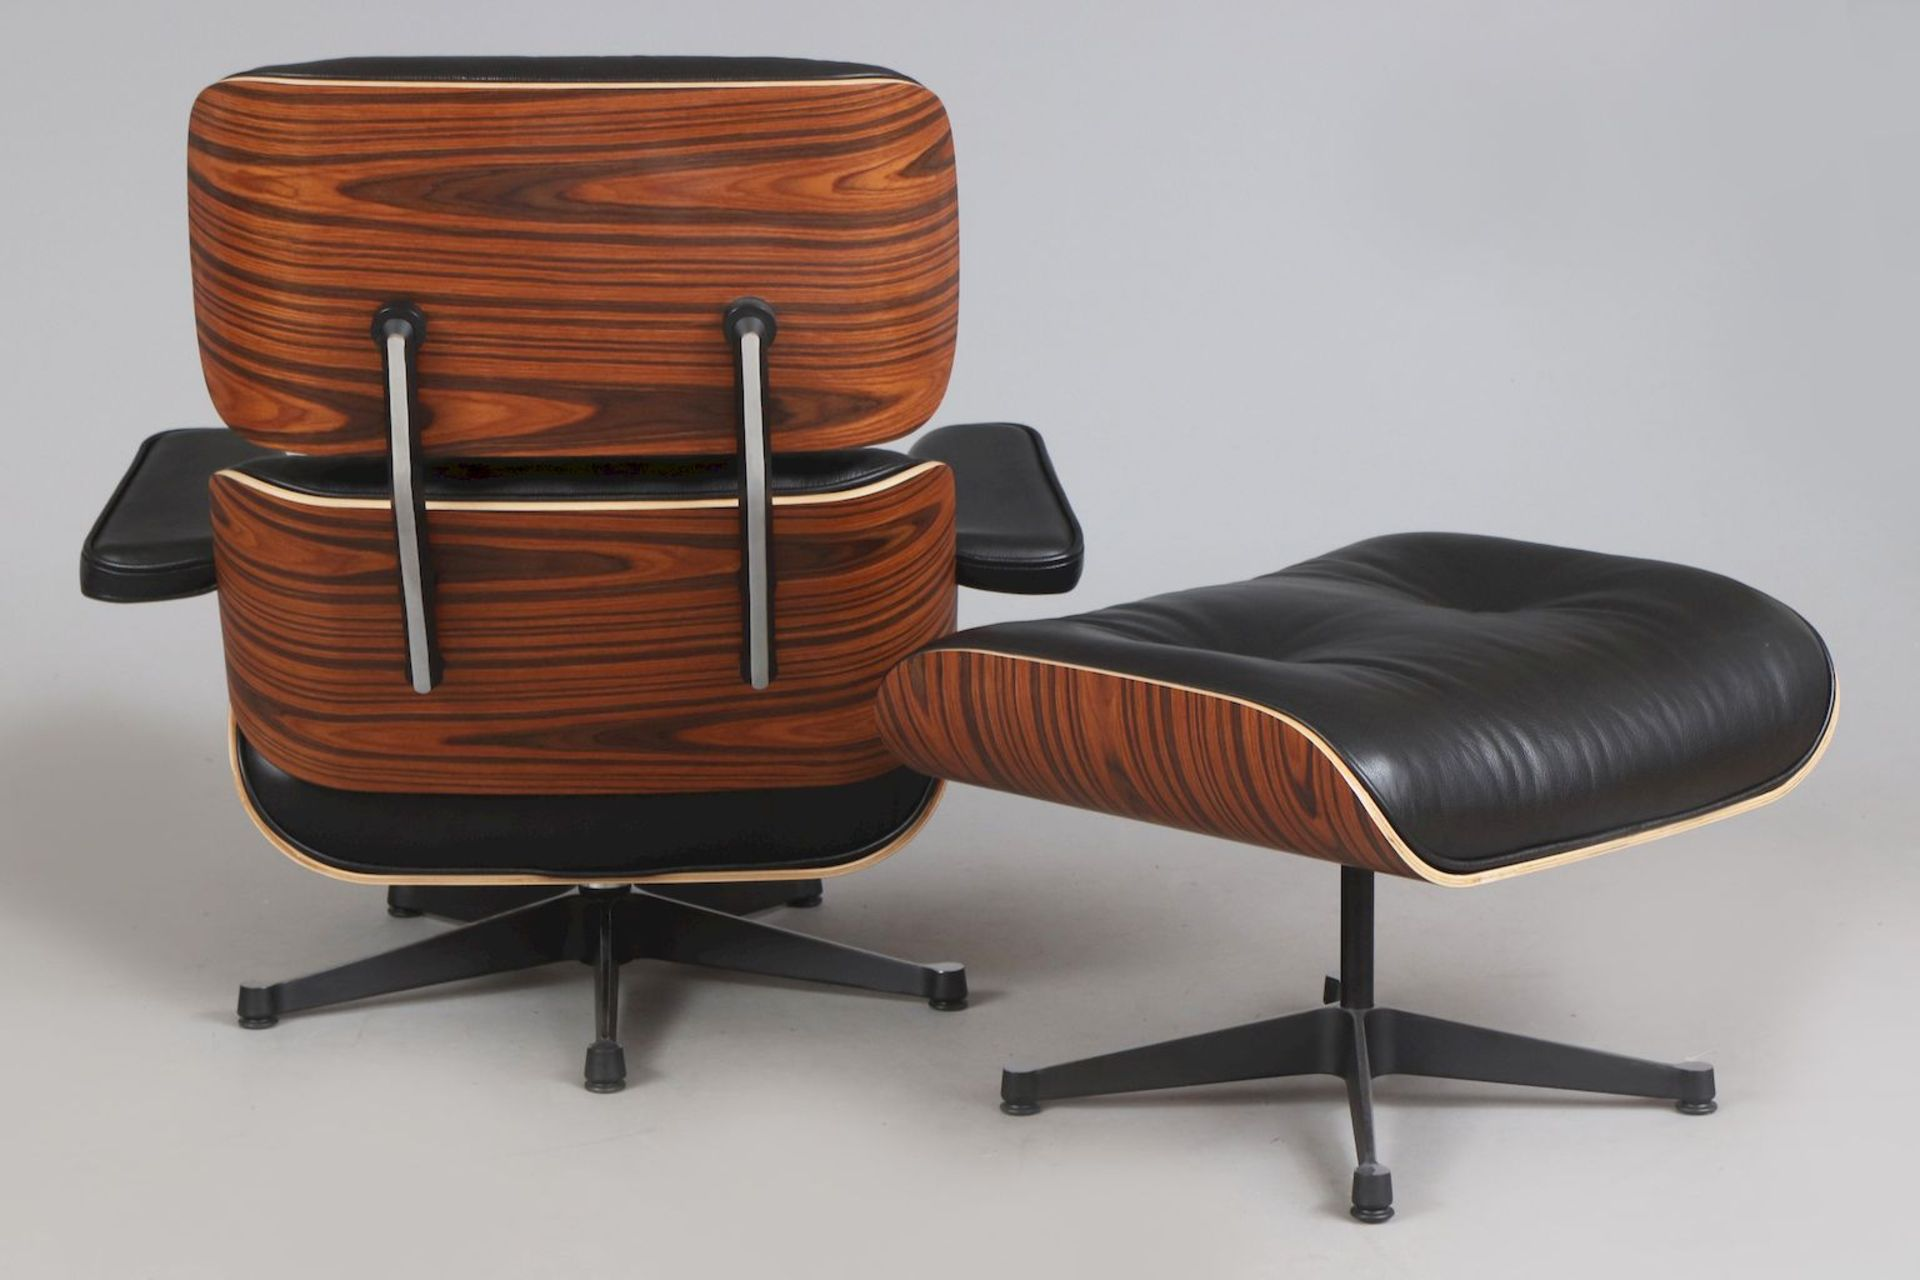 Lounge chair mit Ottomane - Image 4 of 5